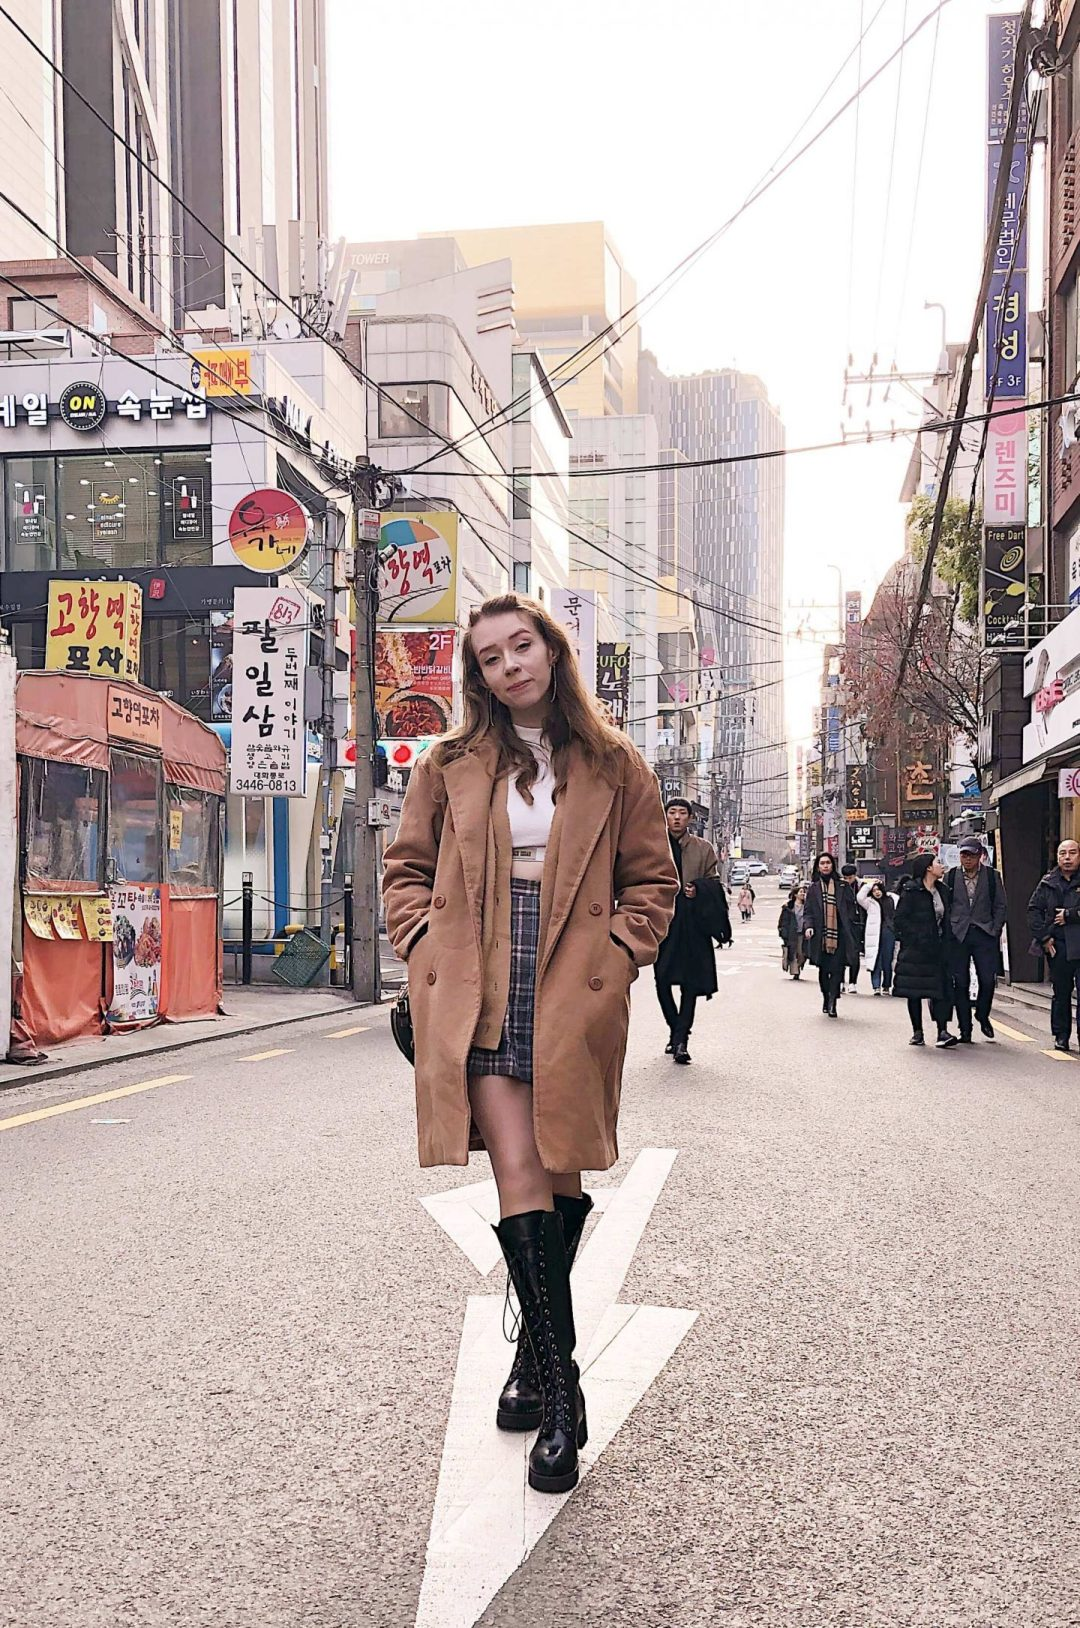 Fii is standing in the middle of the road facing the camera, with tall buildings either side and some people behind. She is wearing the same outfit as above and almost smiling at the camera.